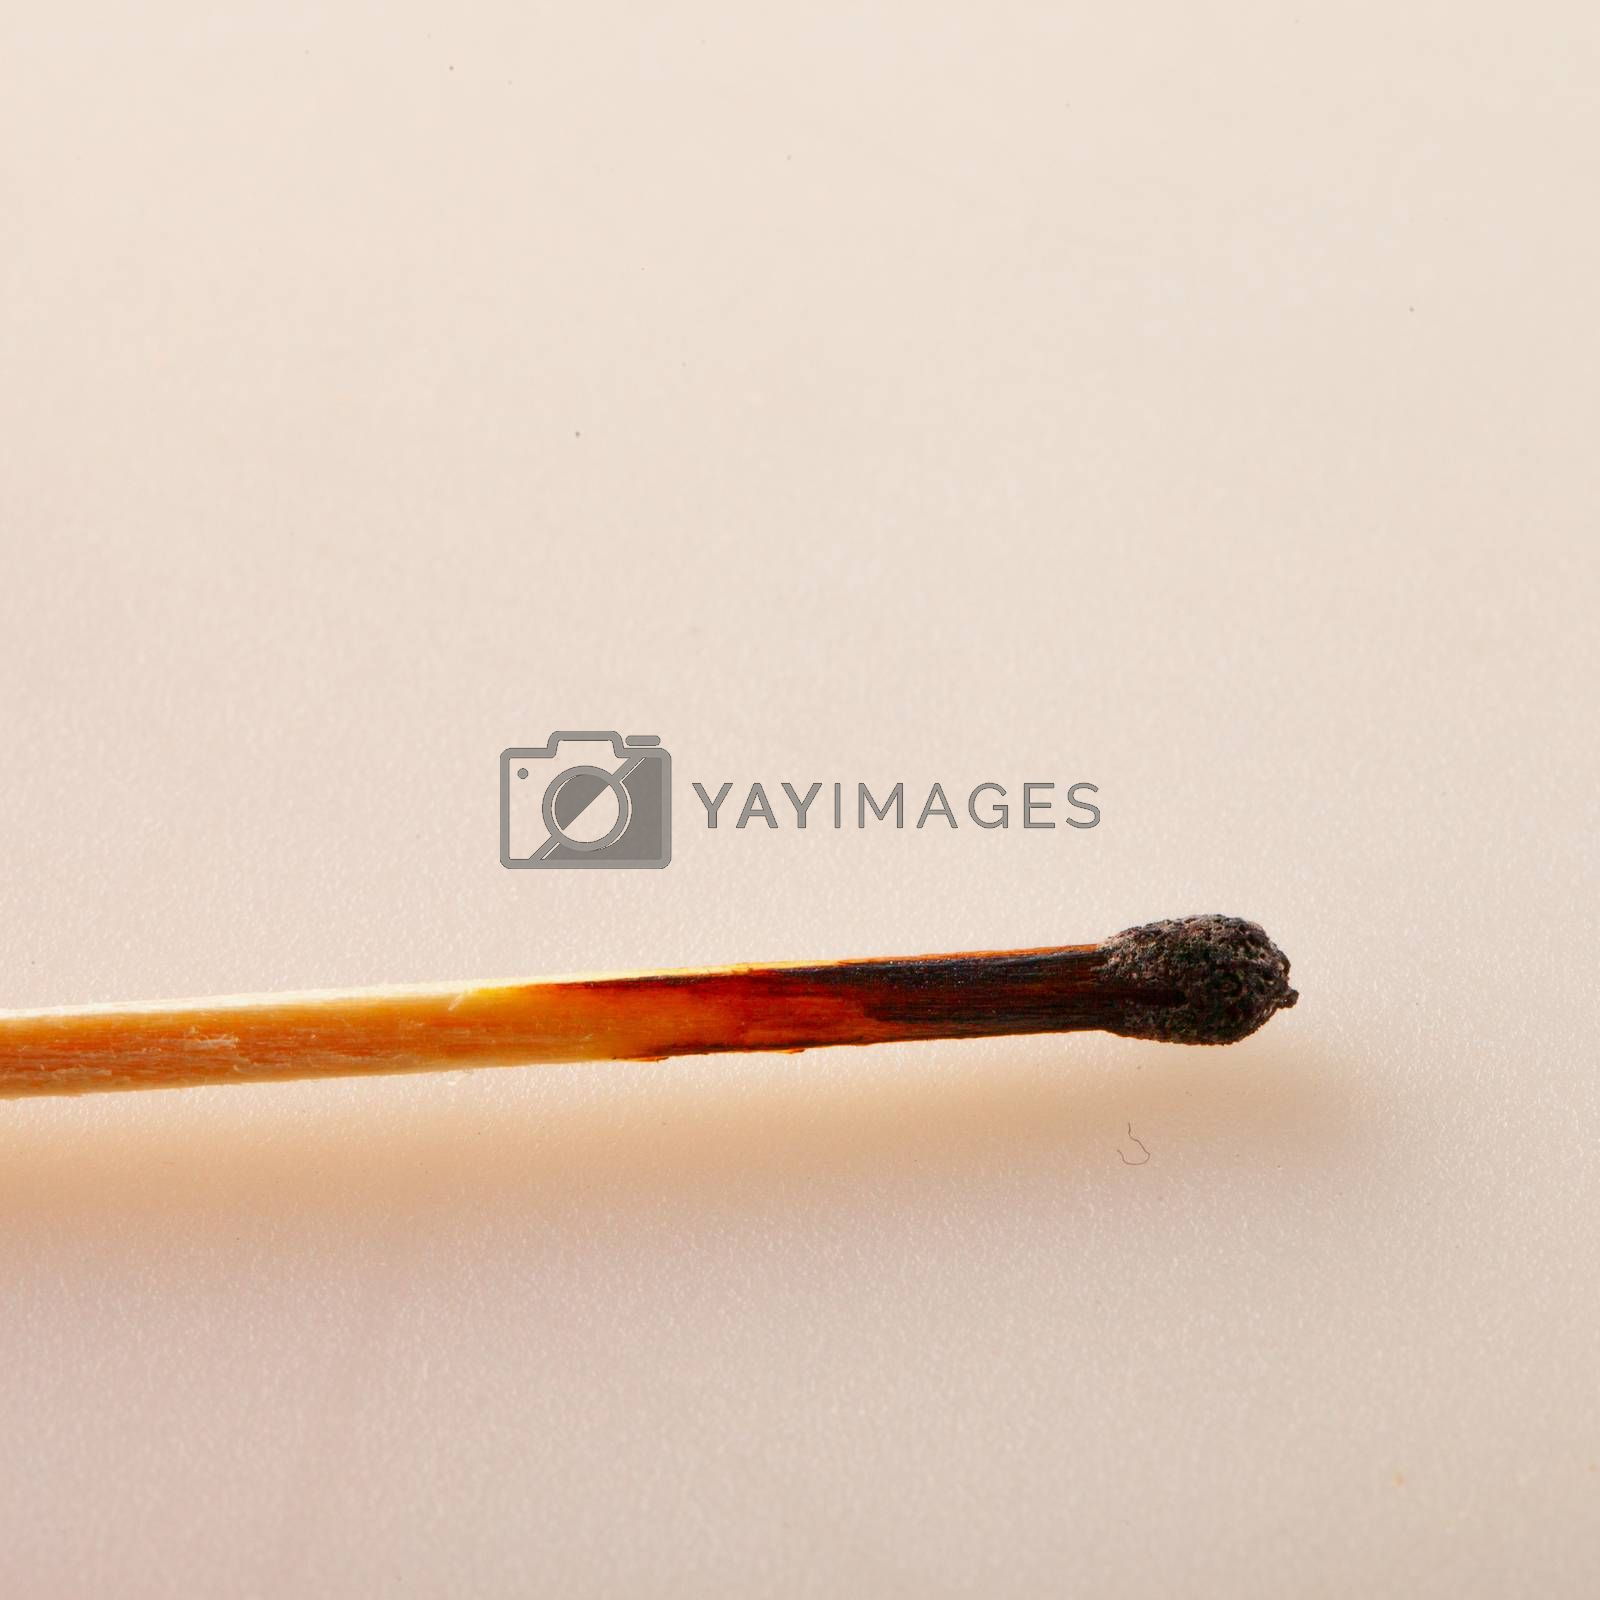 Royalty free image of Burnt match by Koufax73